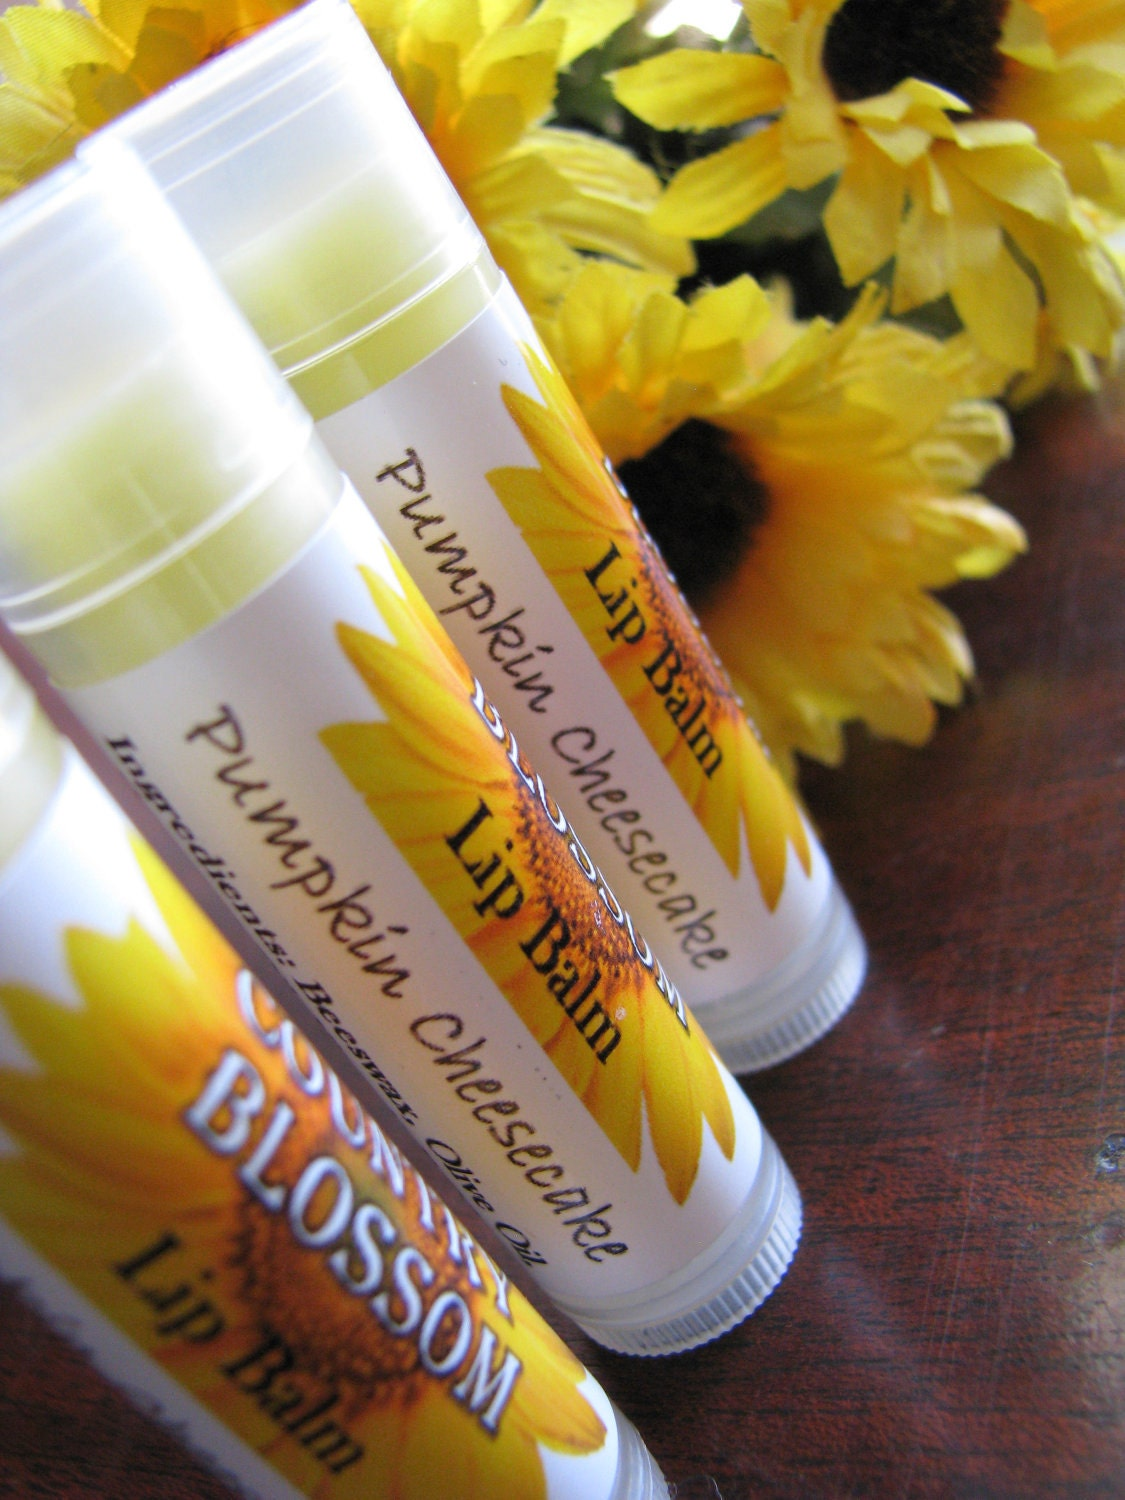 Pumpkin Cheesecake Flavored Natural Beeswax Lip Balm - Made with Olive Oil, Coconut Oil and Vitamin E Oil